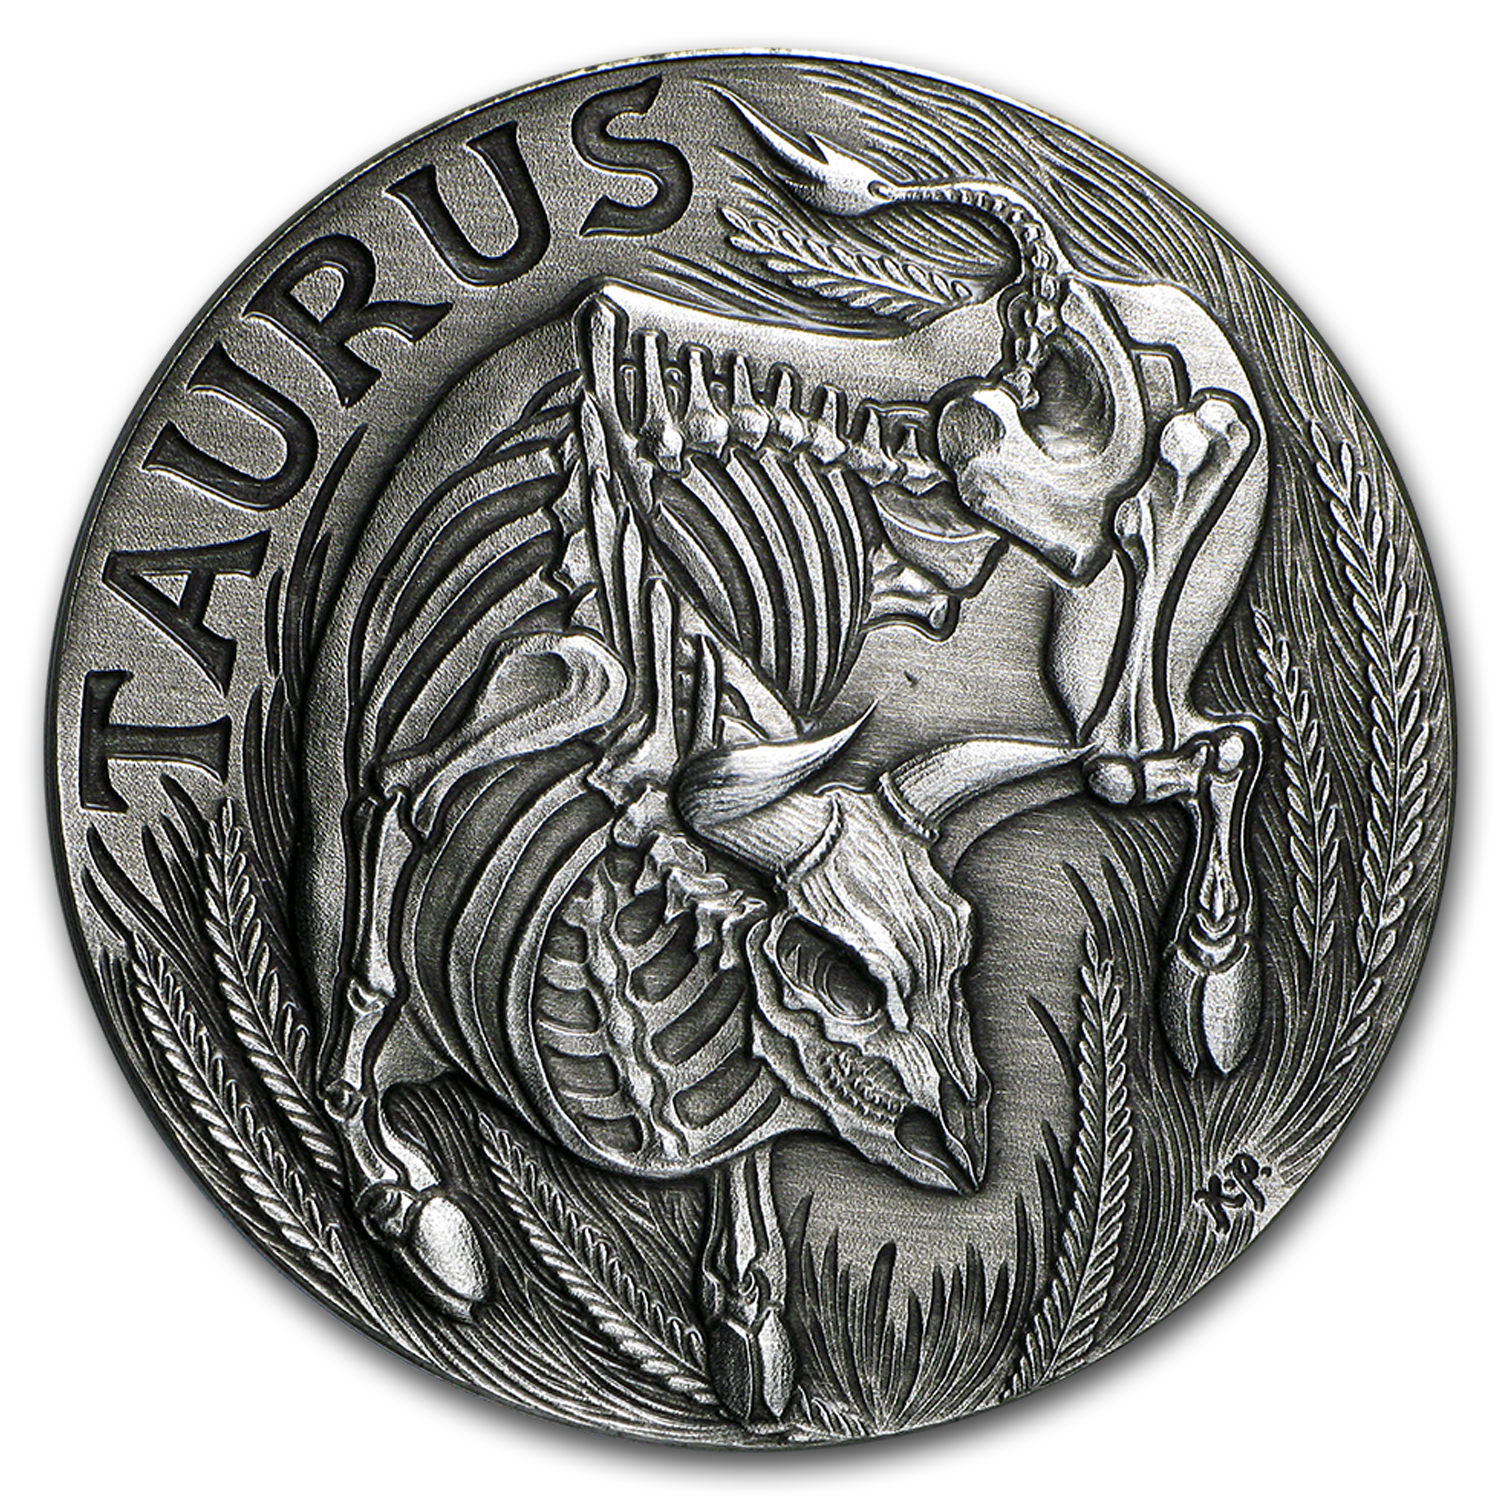 1 oz Silver Antique Round - Zodiac Skull Series (Taurus)